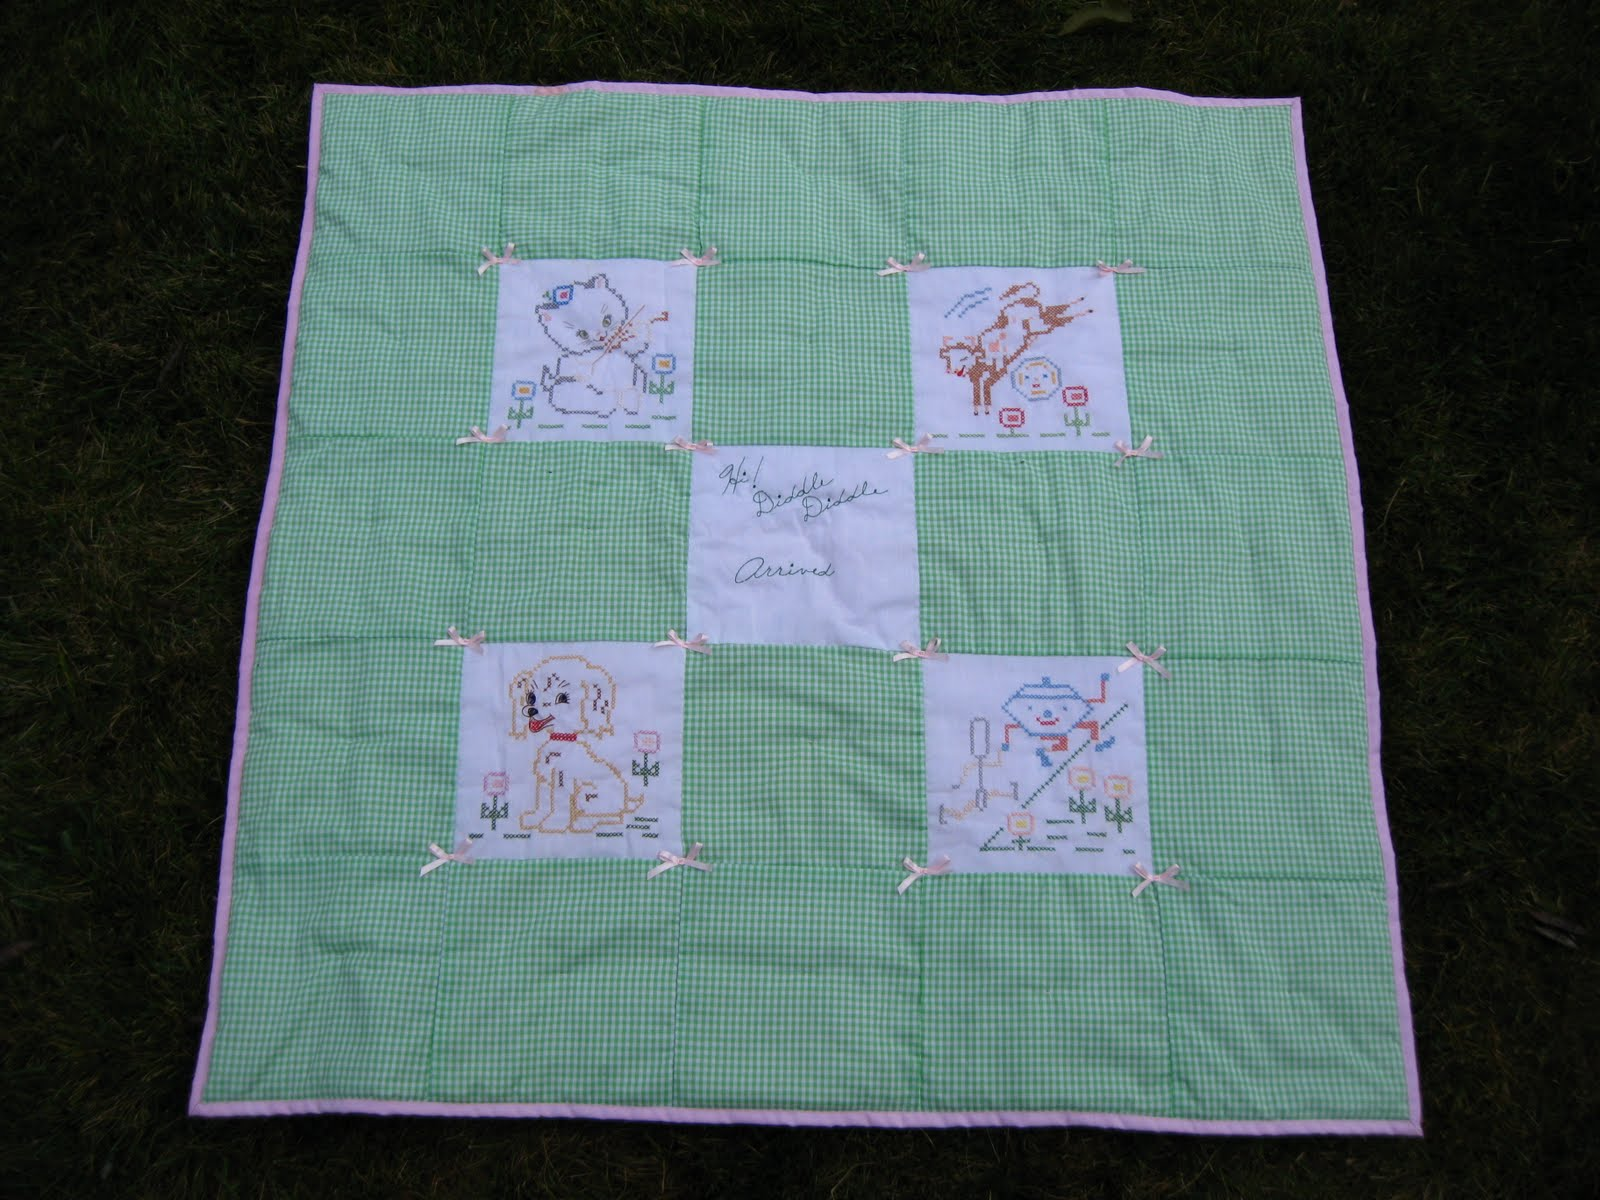 show star confession therapy quilt midnight quilting hand is page a my lemoyne quilty orvus comment soap the pattern